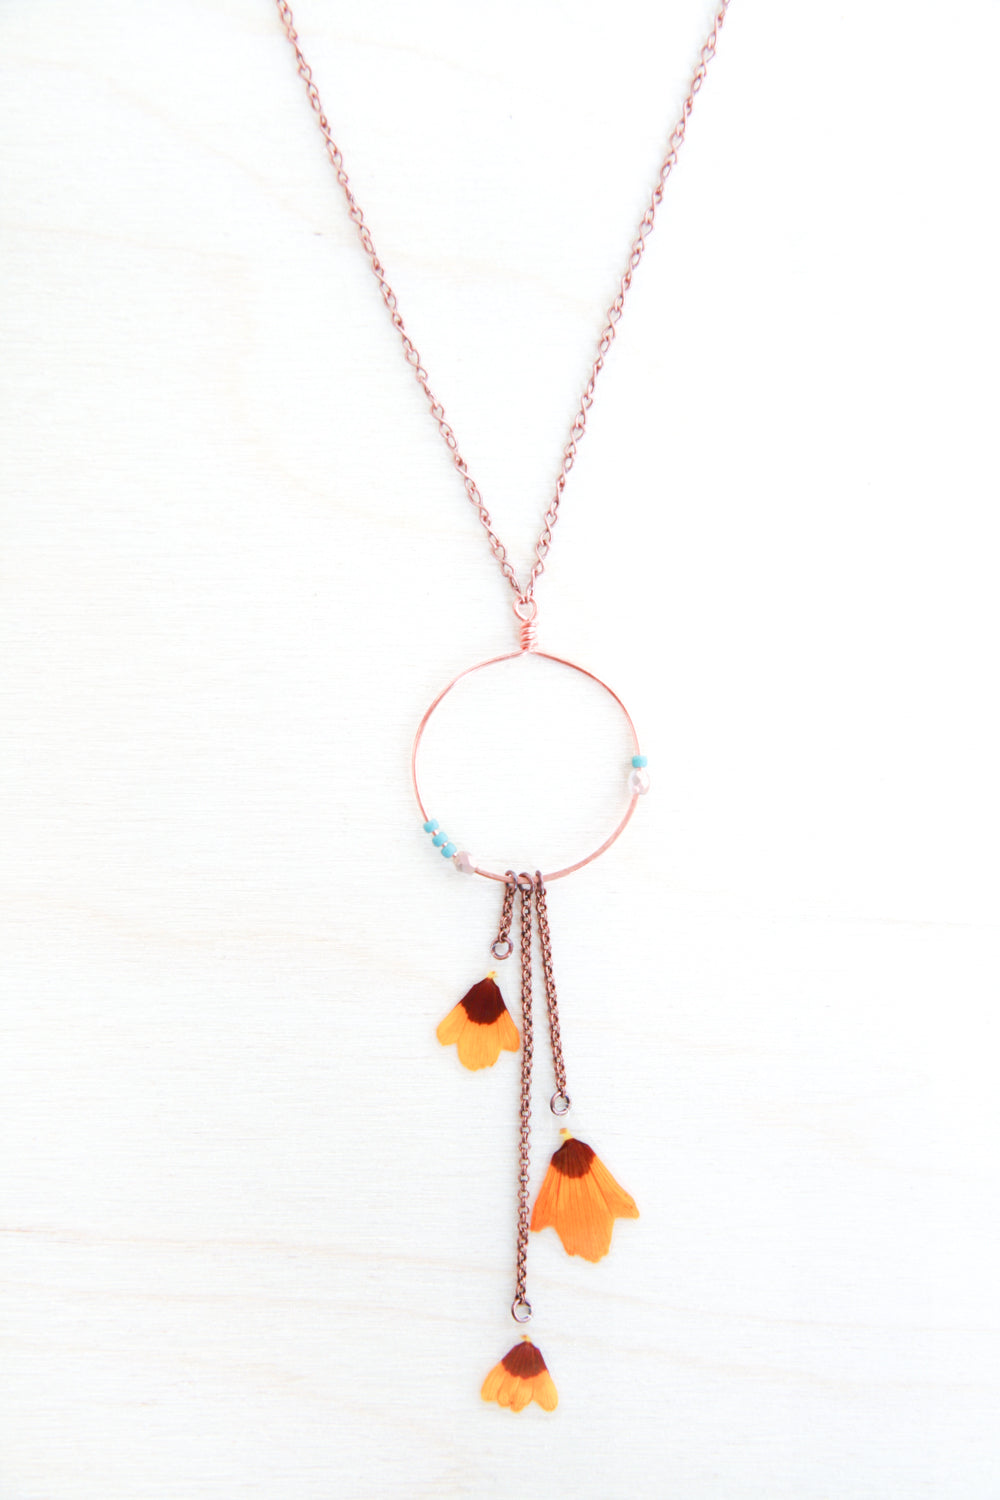 Yellow Coreopsis Pressed Flower Necklace with Copper Hoop & Glass Beads